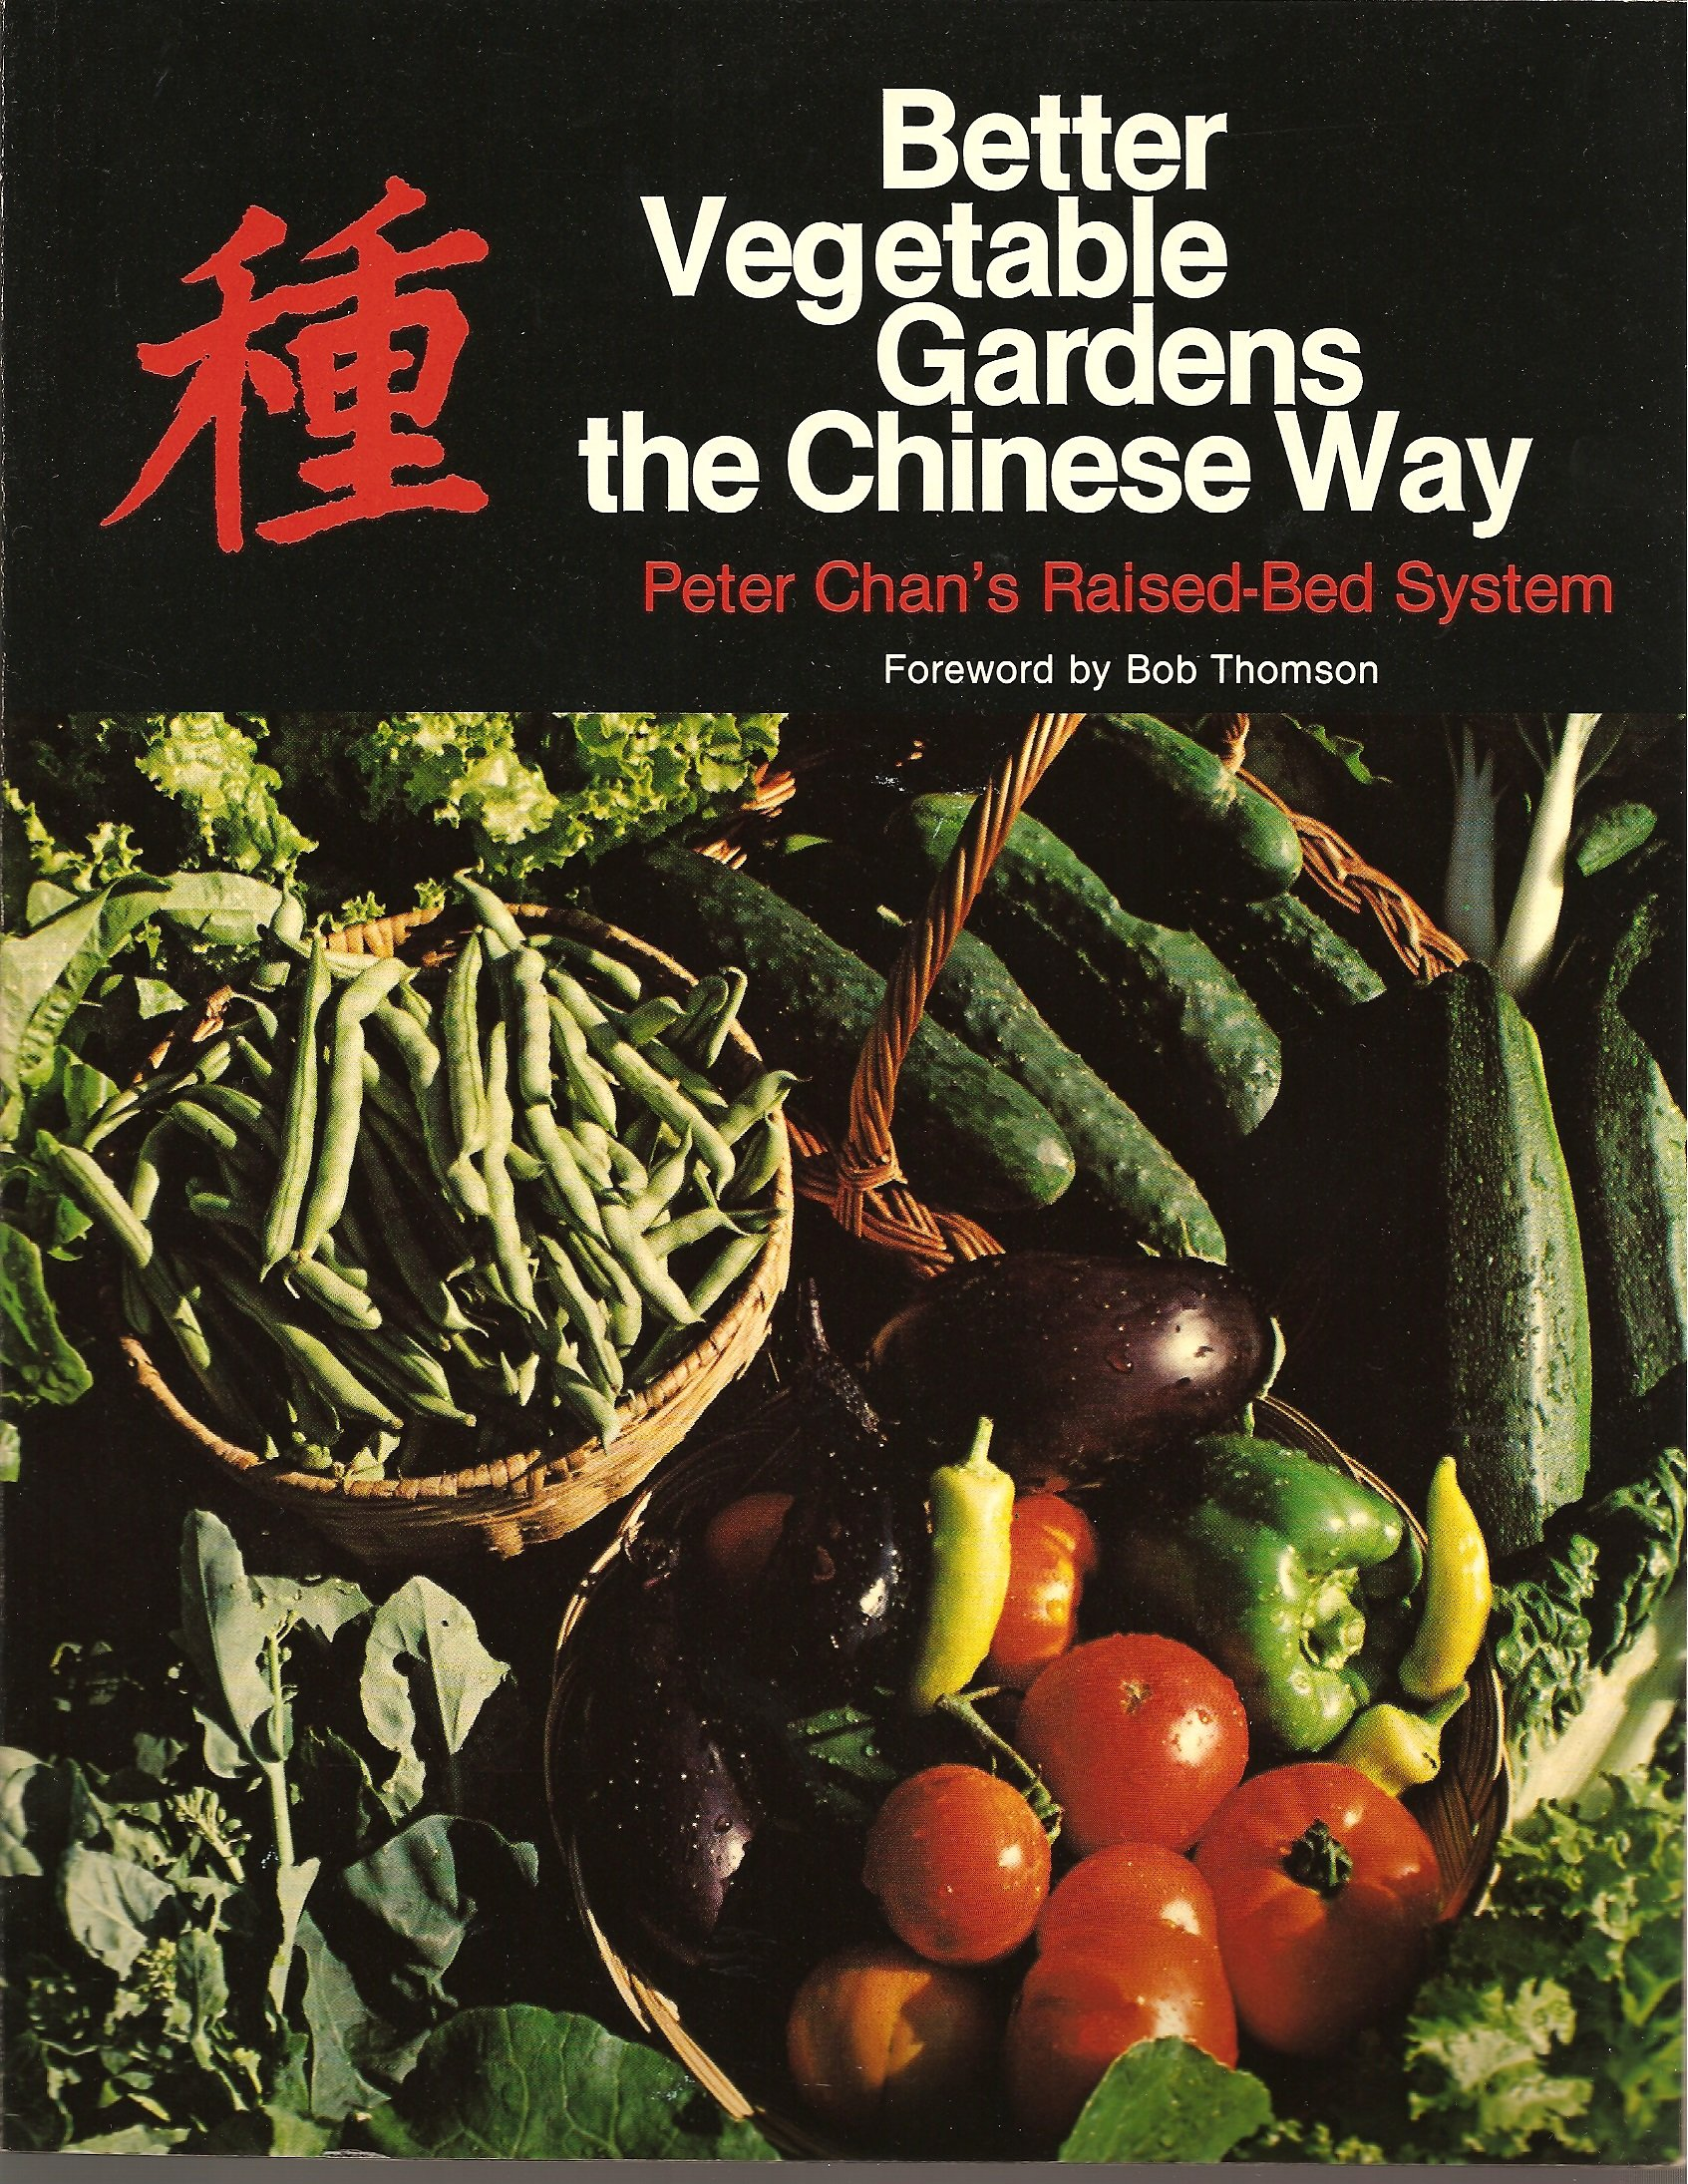 Better Vegetable Gardens the Chinese Way: Peter Chan's Raised-Bed System (A Garden Way Publishing Book), Chan, Peter